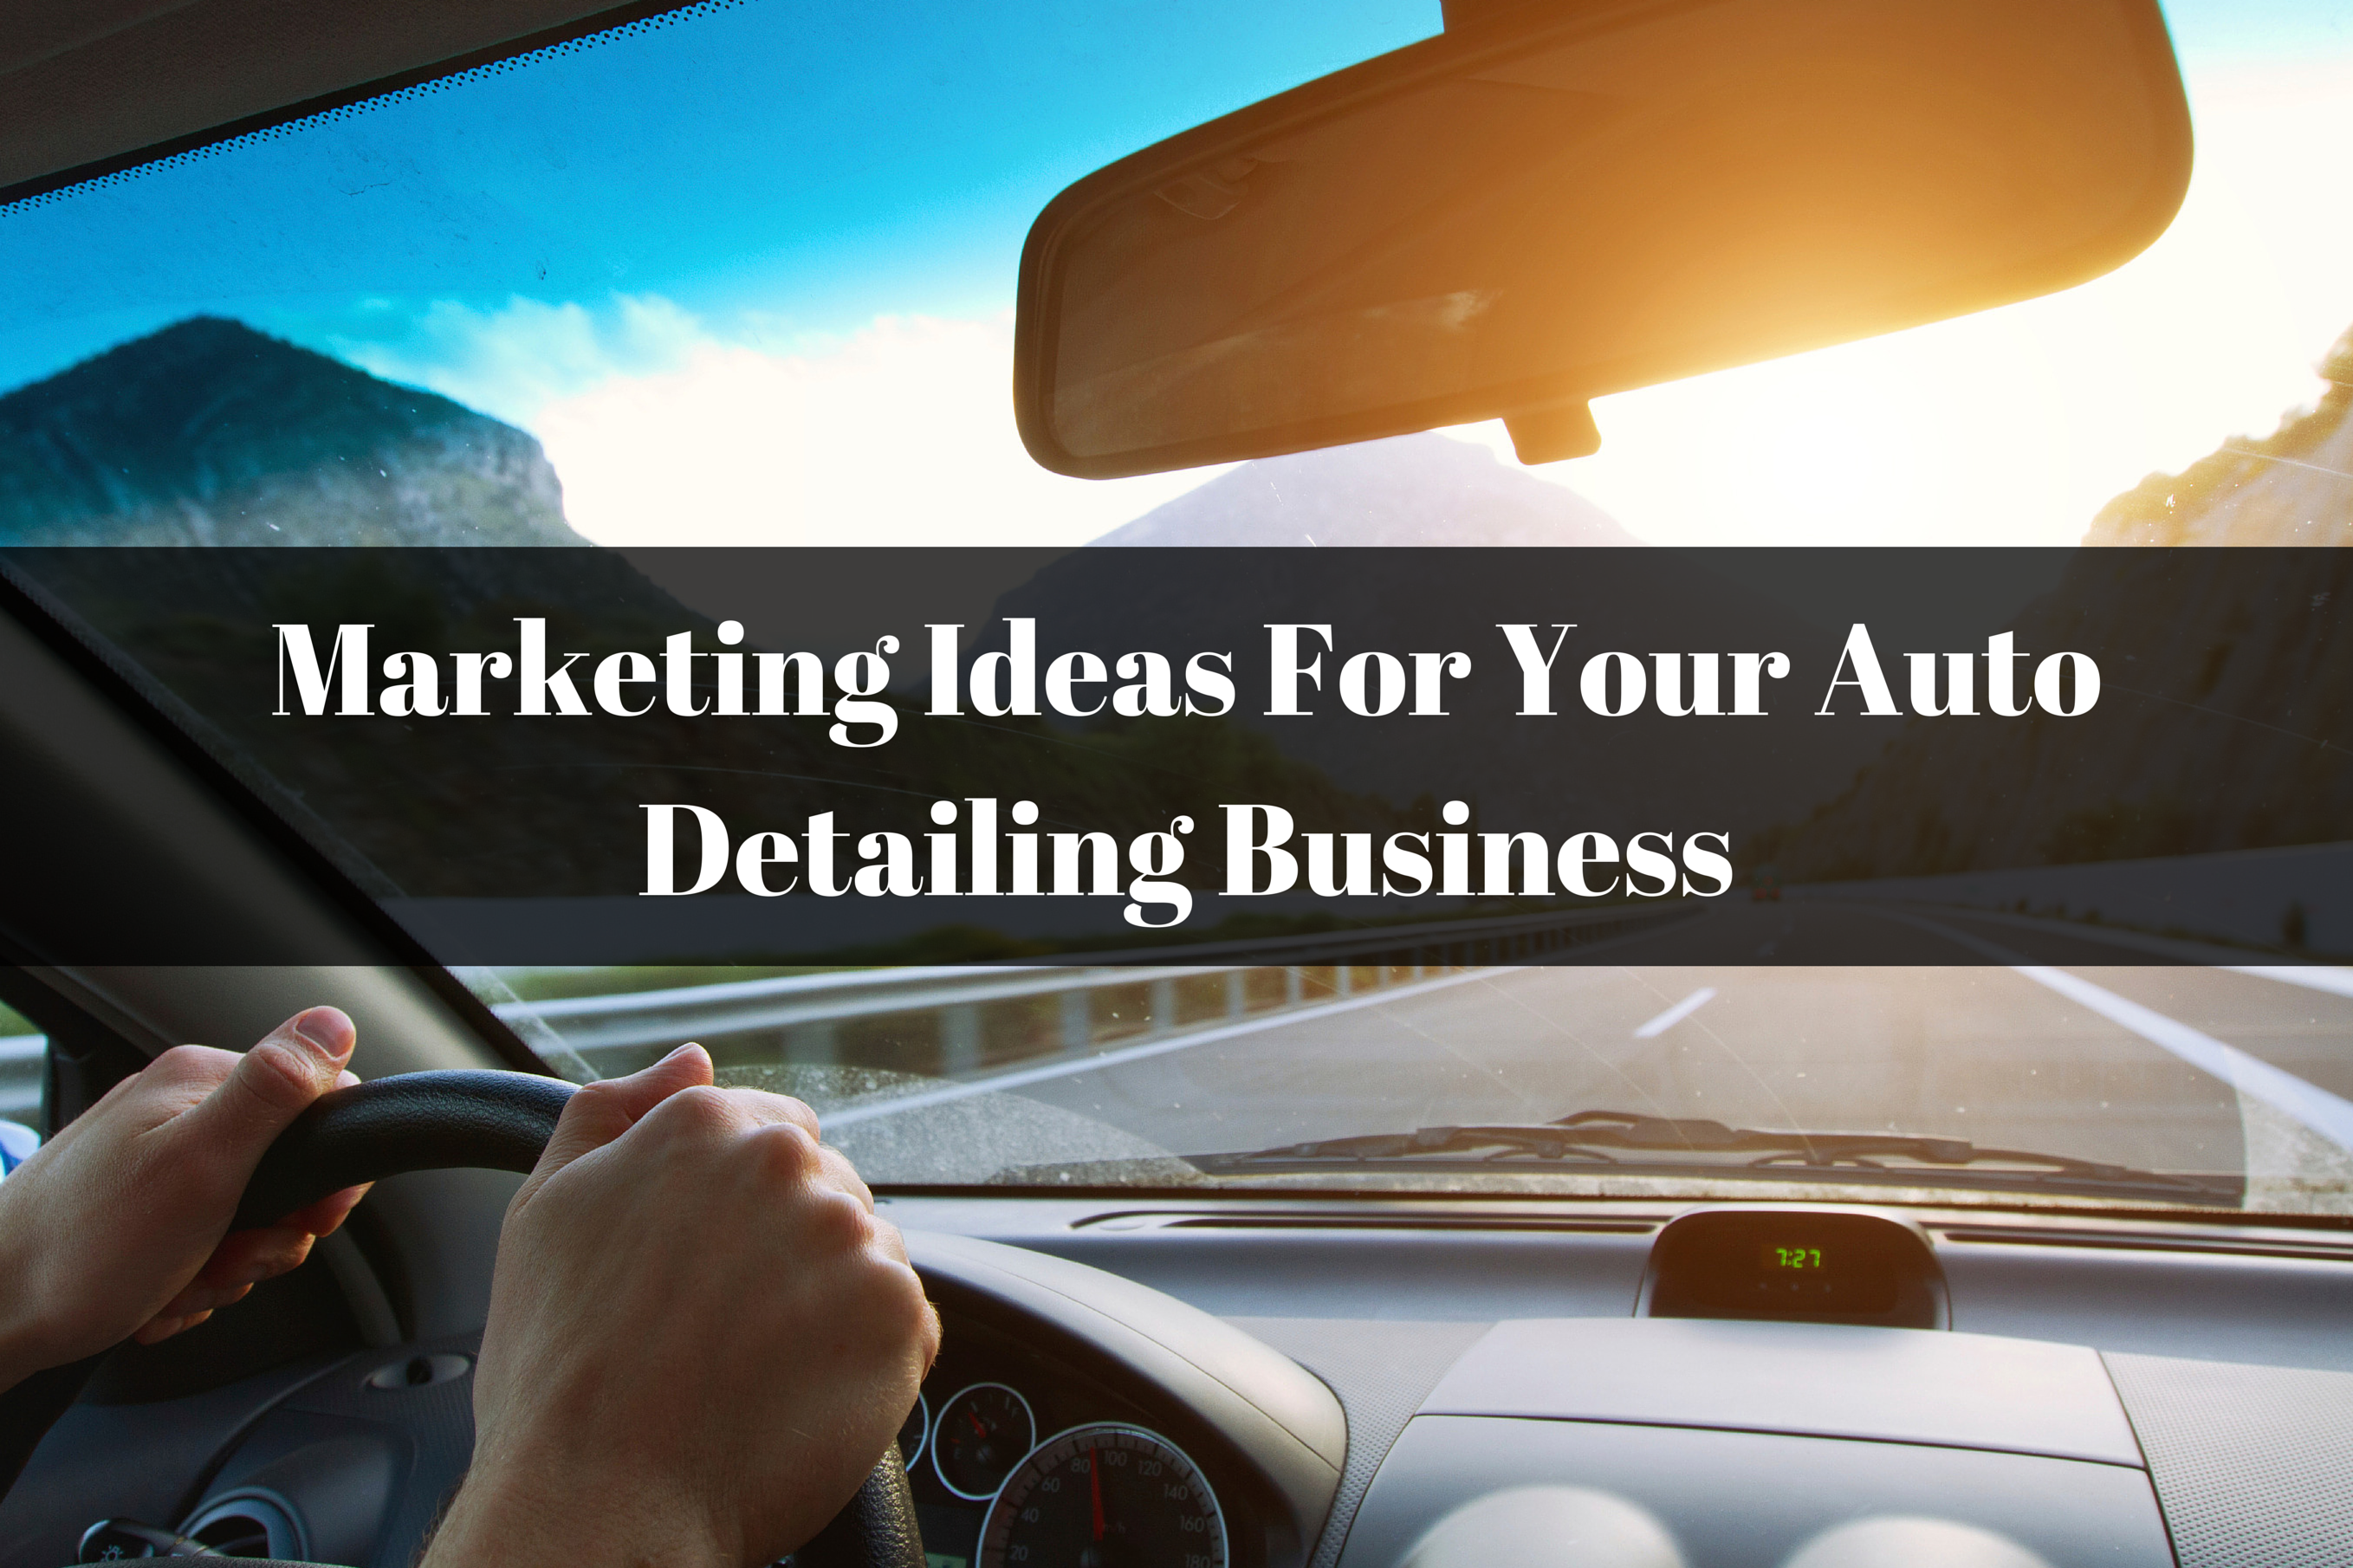 Marketing ideas for your auto detailing business pinterest marketing ideas for your auto detailing business httpbraunautomotiveushblogauto detailing business marketing ideas solutioingenieria Image collections